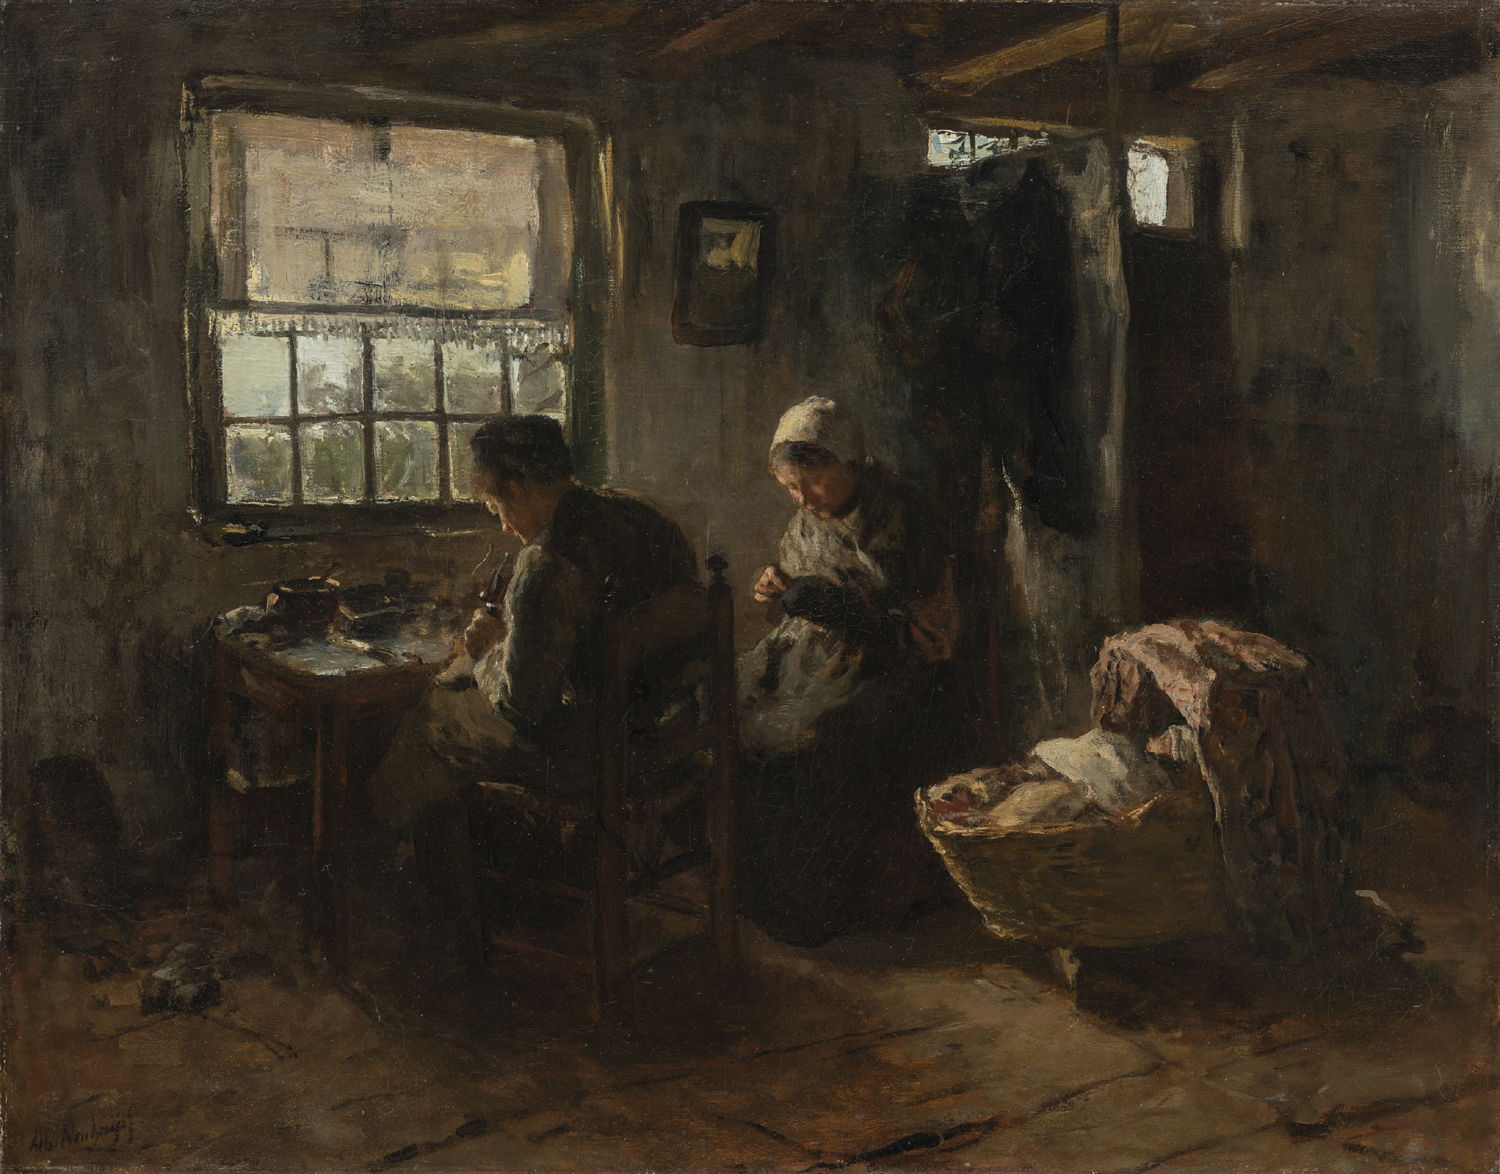 Albert Neuhuys |Farmers interior with father, mother and baby in a cradle | Kunsthandel Bies | Bies Gallery